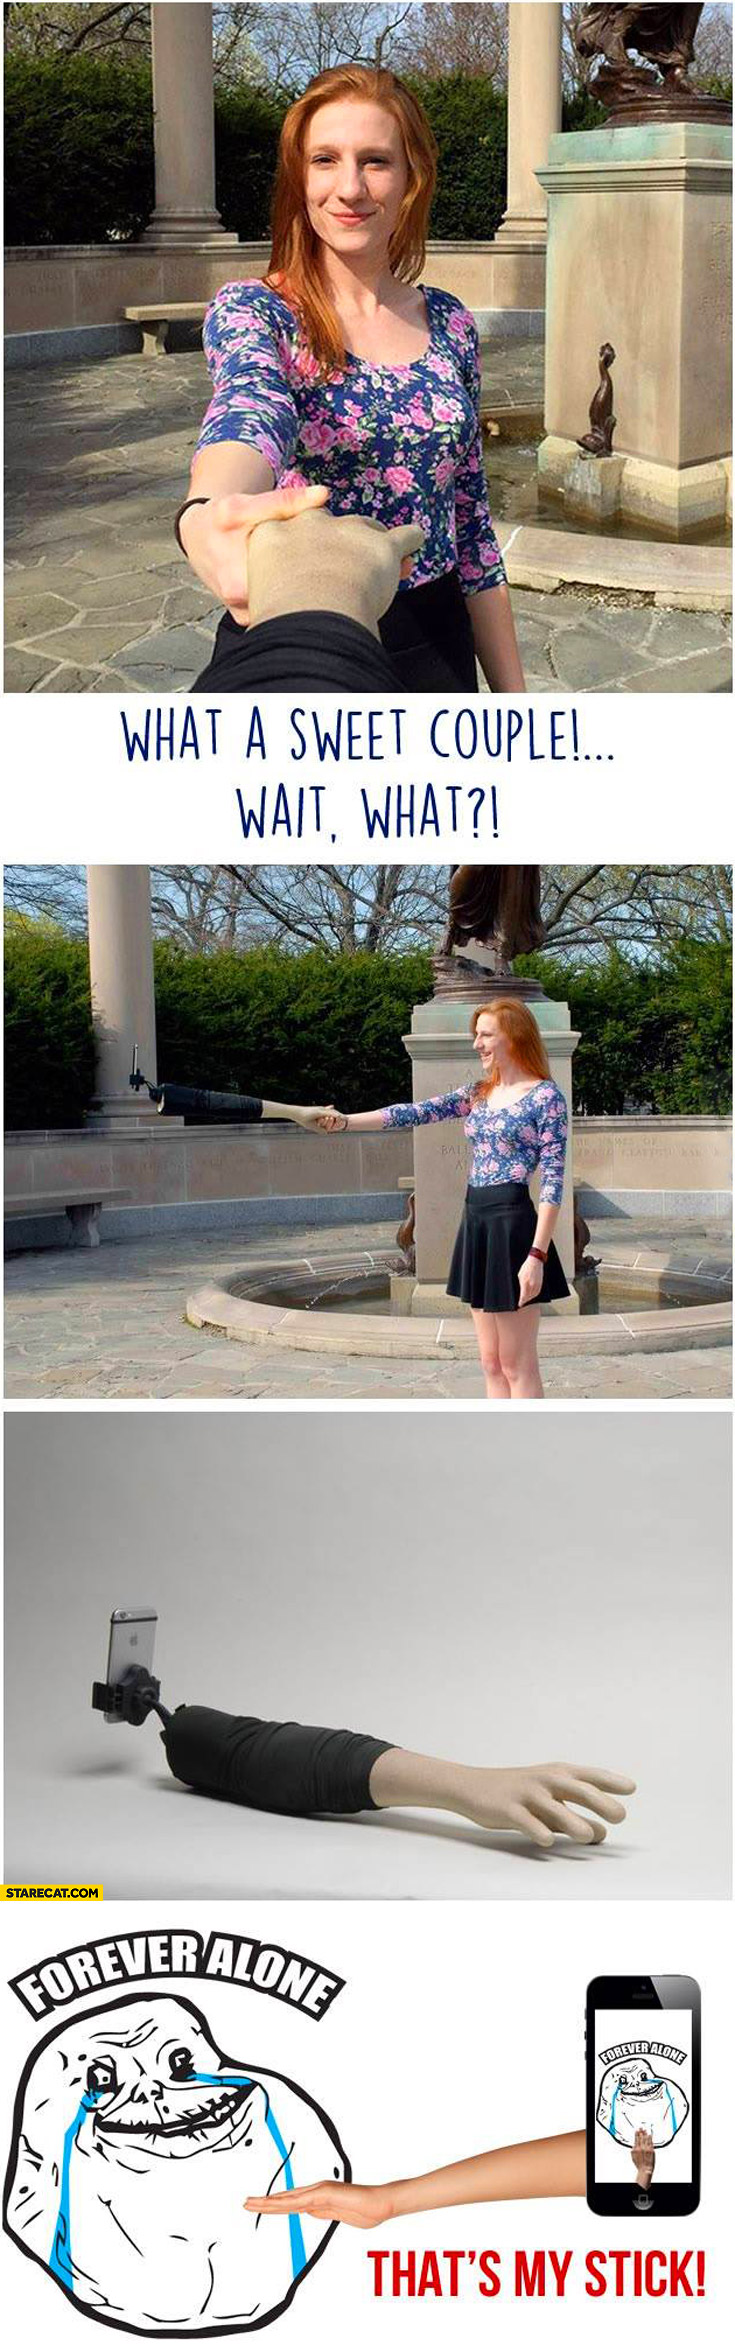 Selfie stick hand forever alone